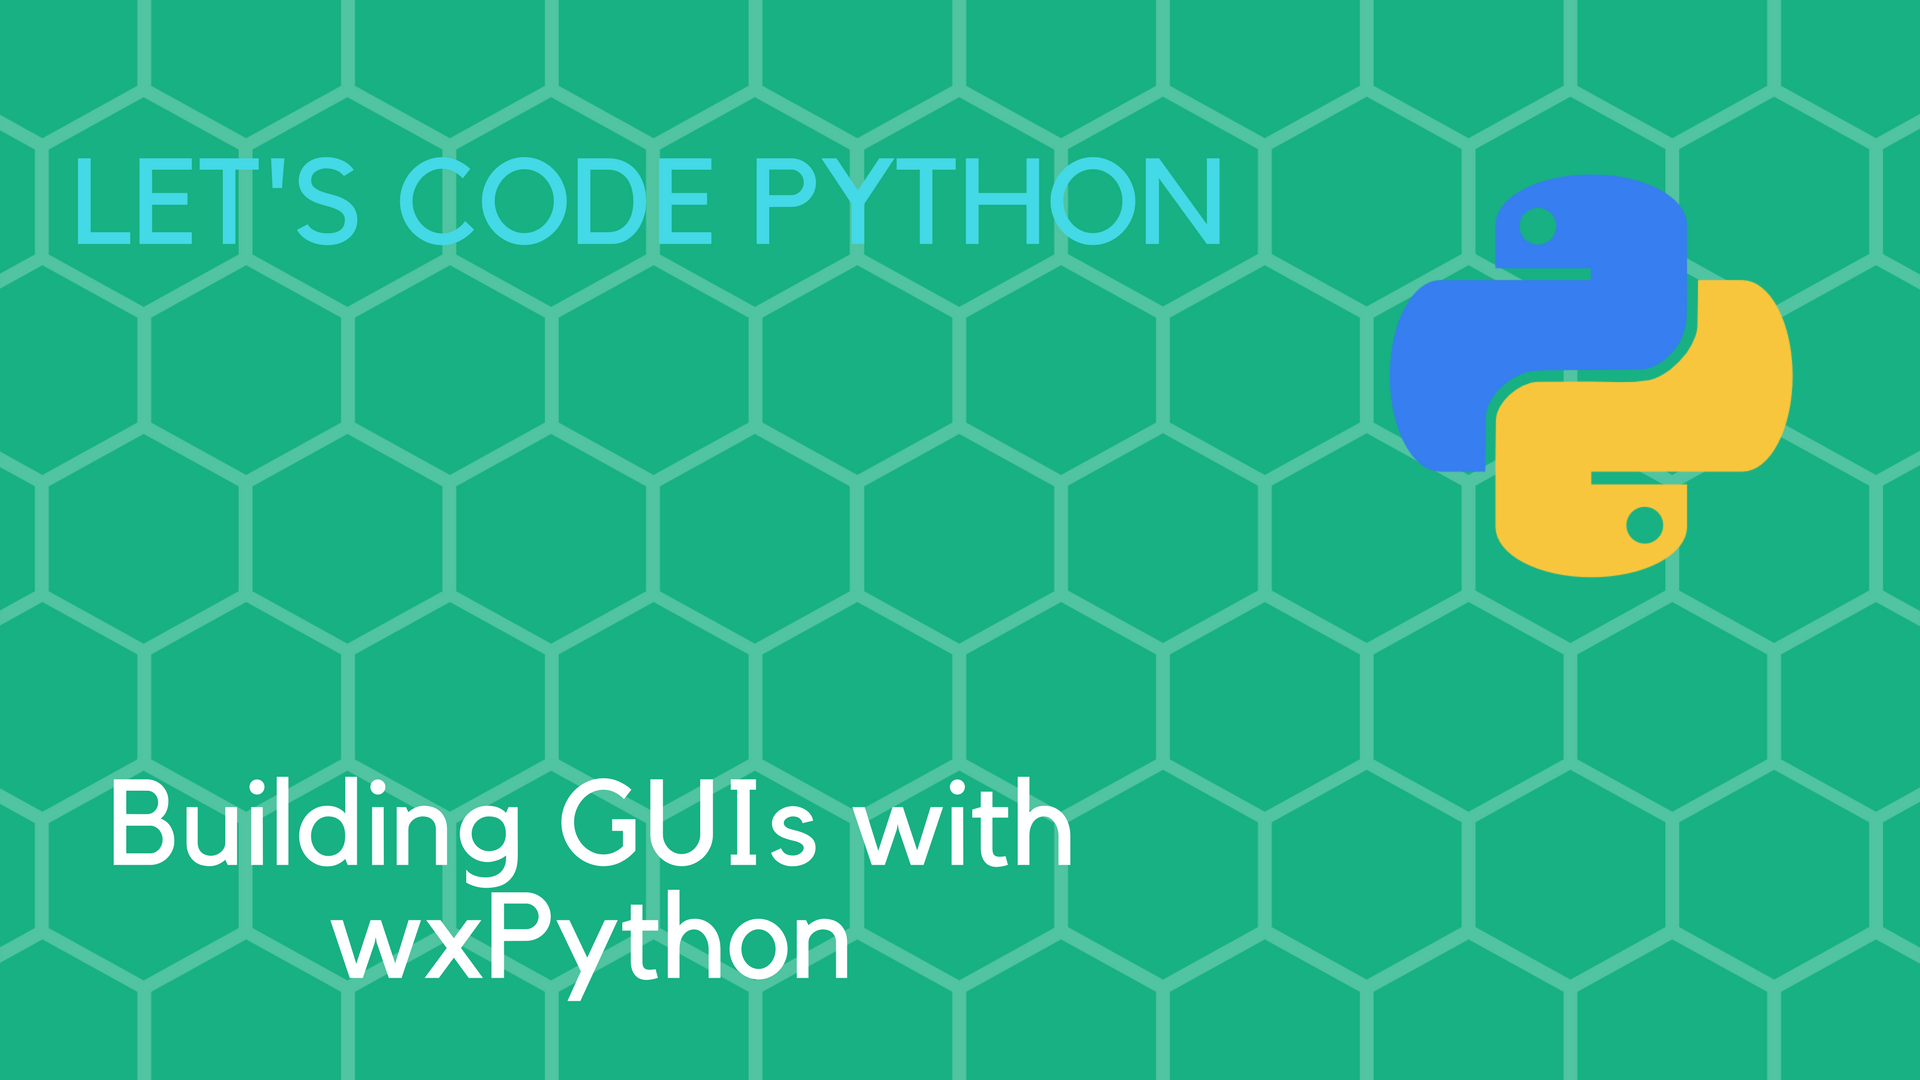 Building GUIs with wxPython